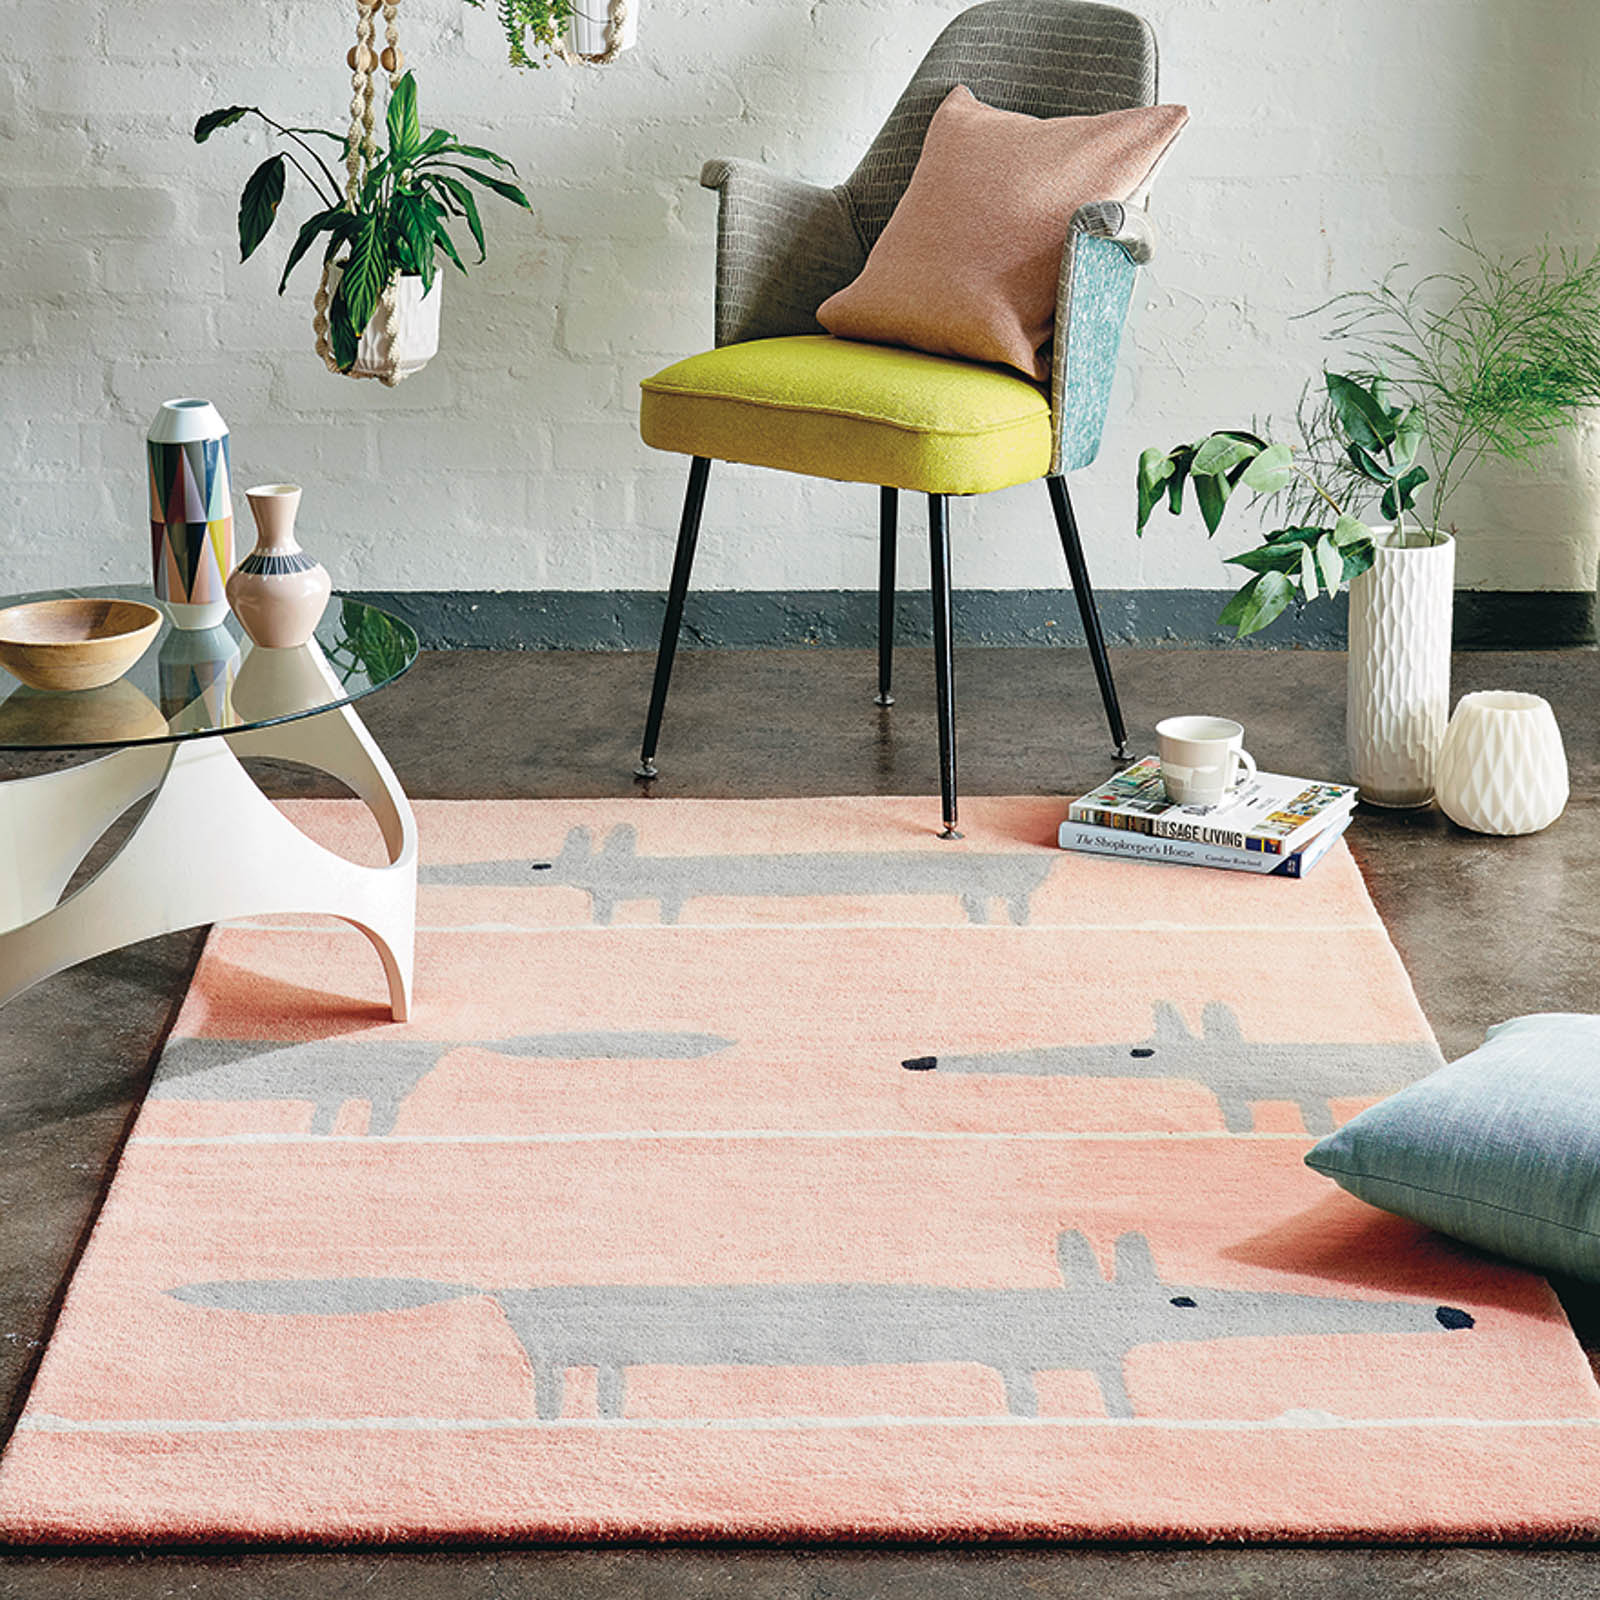 Scion Mr Fox Rugs in Blush Pink